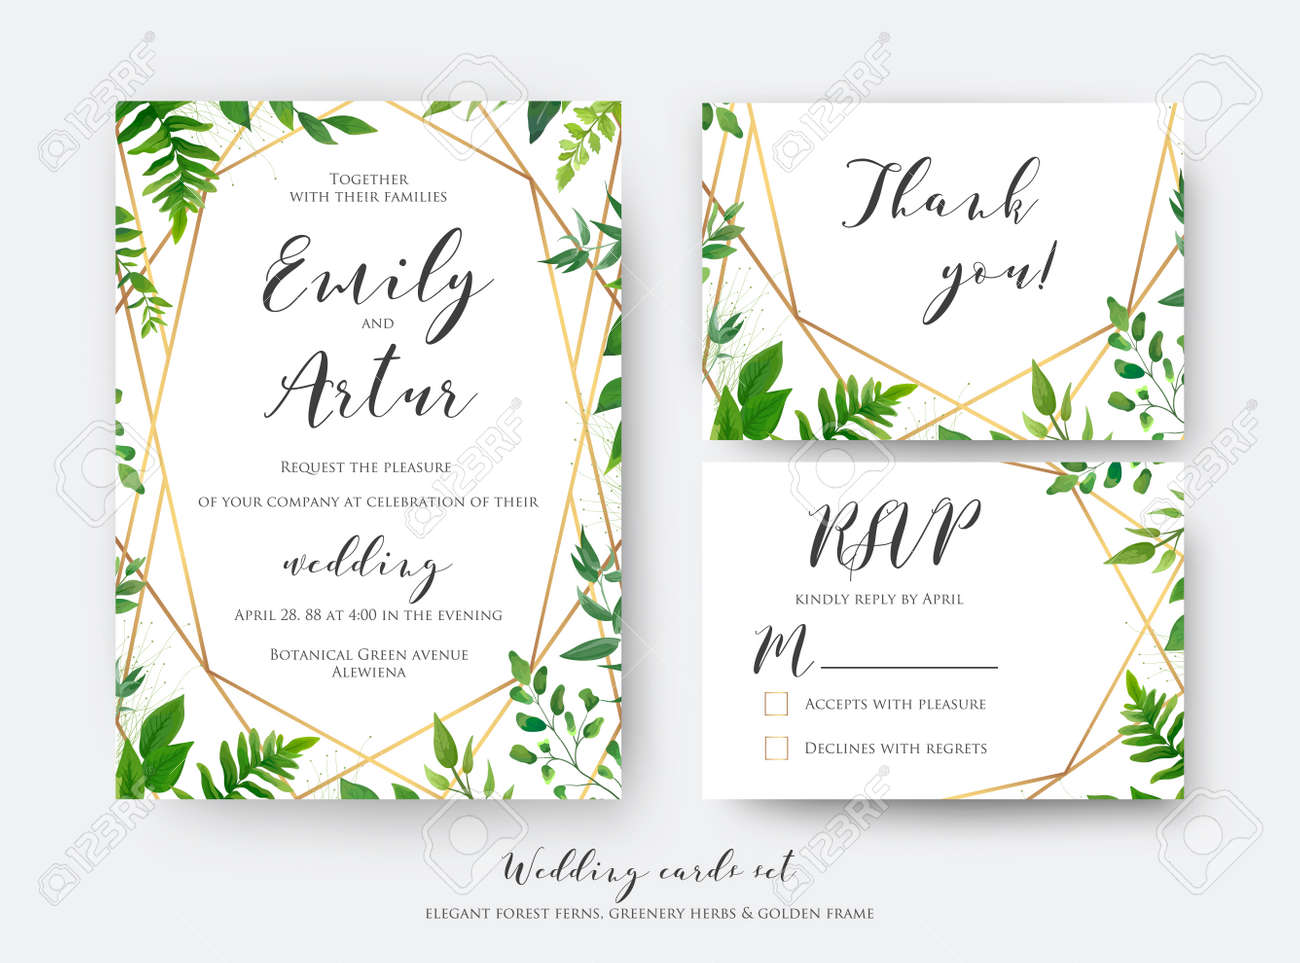 Wedding floral invite, invitation, rsvp, thank you card template set. Vector modern, botanical card design with green forest fern leaves, greenery herbs border with luxury Geometric decoration - 151790728